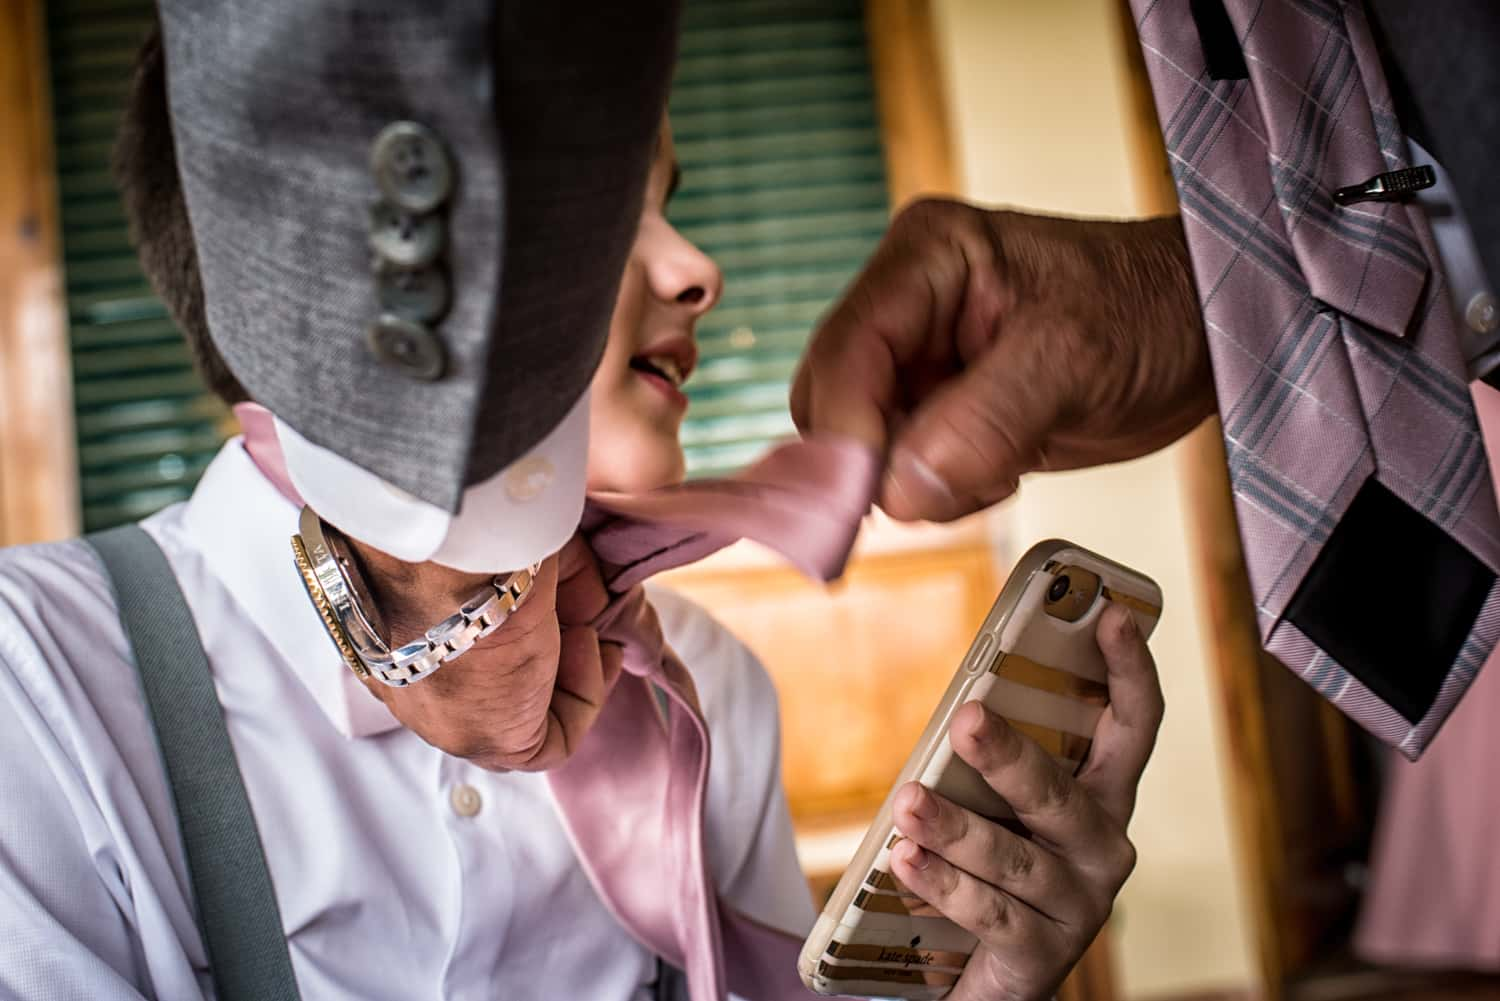 The young boy ring bearer in a white shirt plays on his mothers gold iphone while his grandfathers hands tie his pink tie.